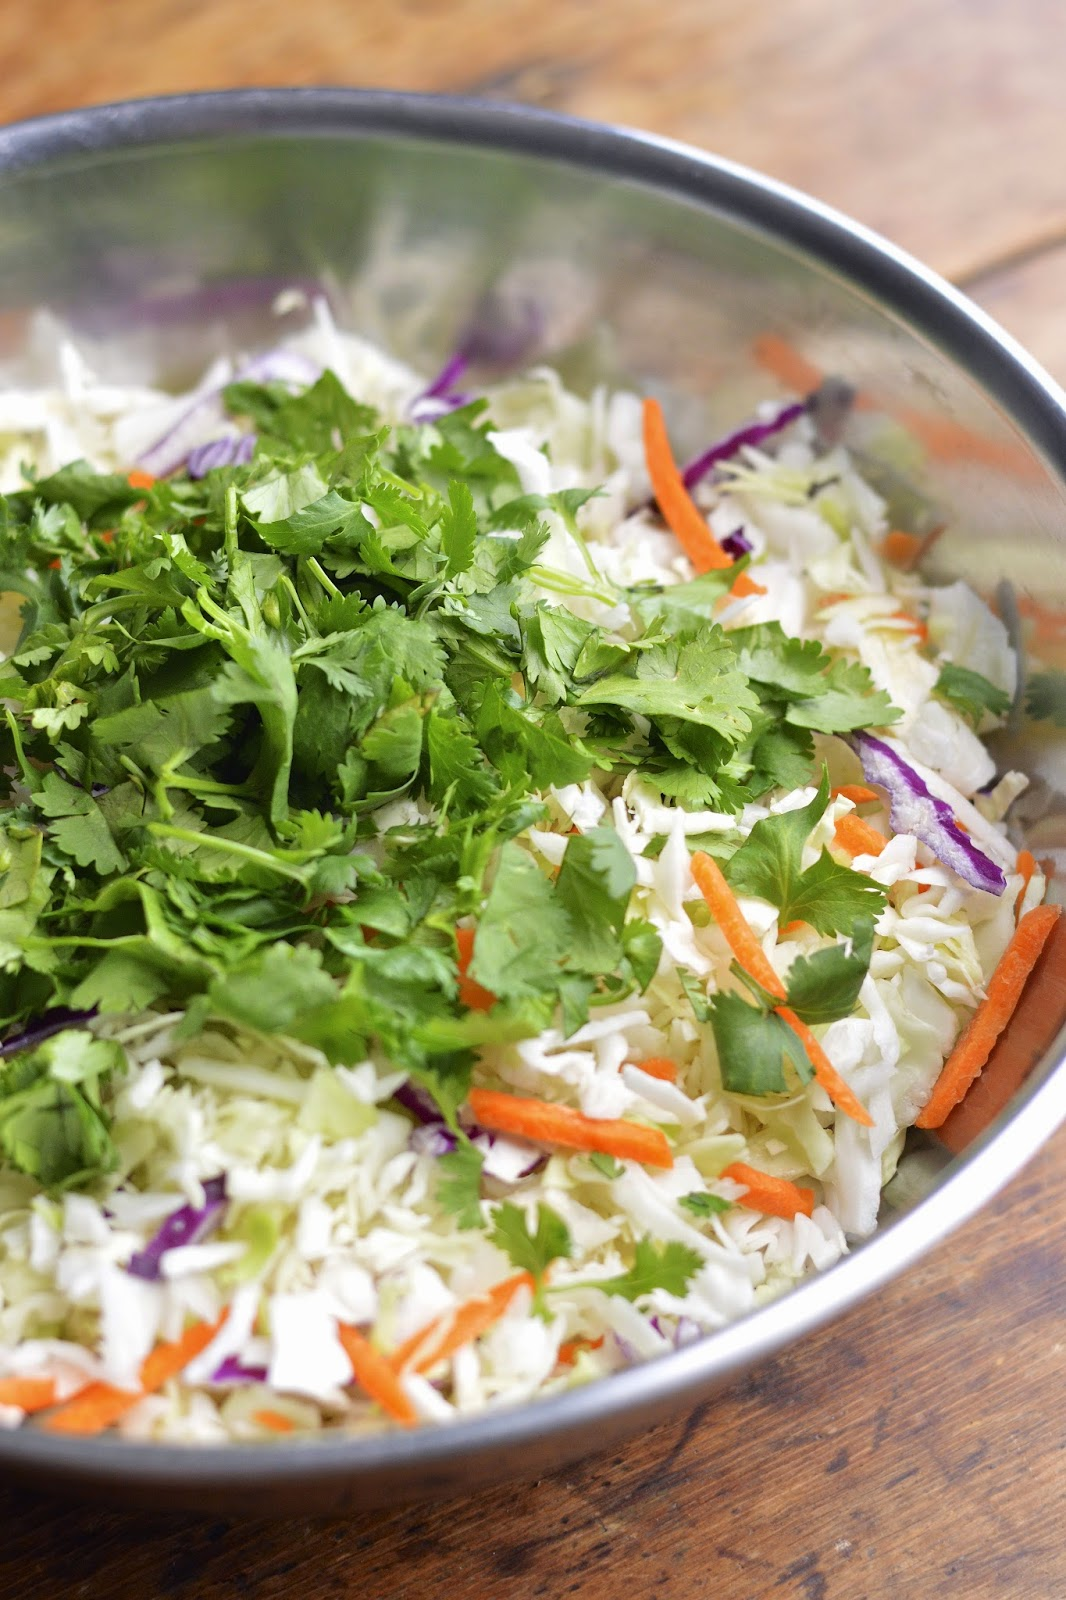 ... slaw recipe with this spicy mexican slaw with cilantro lime coleslaw